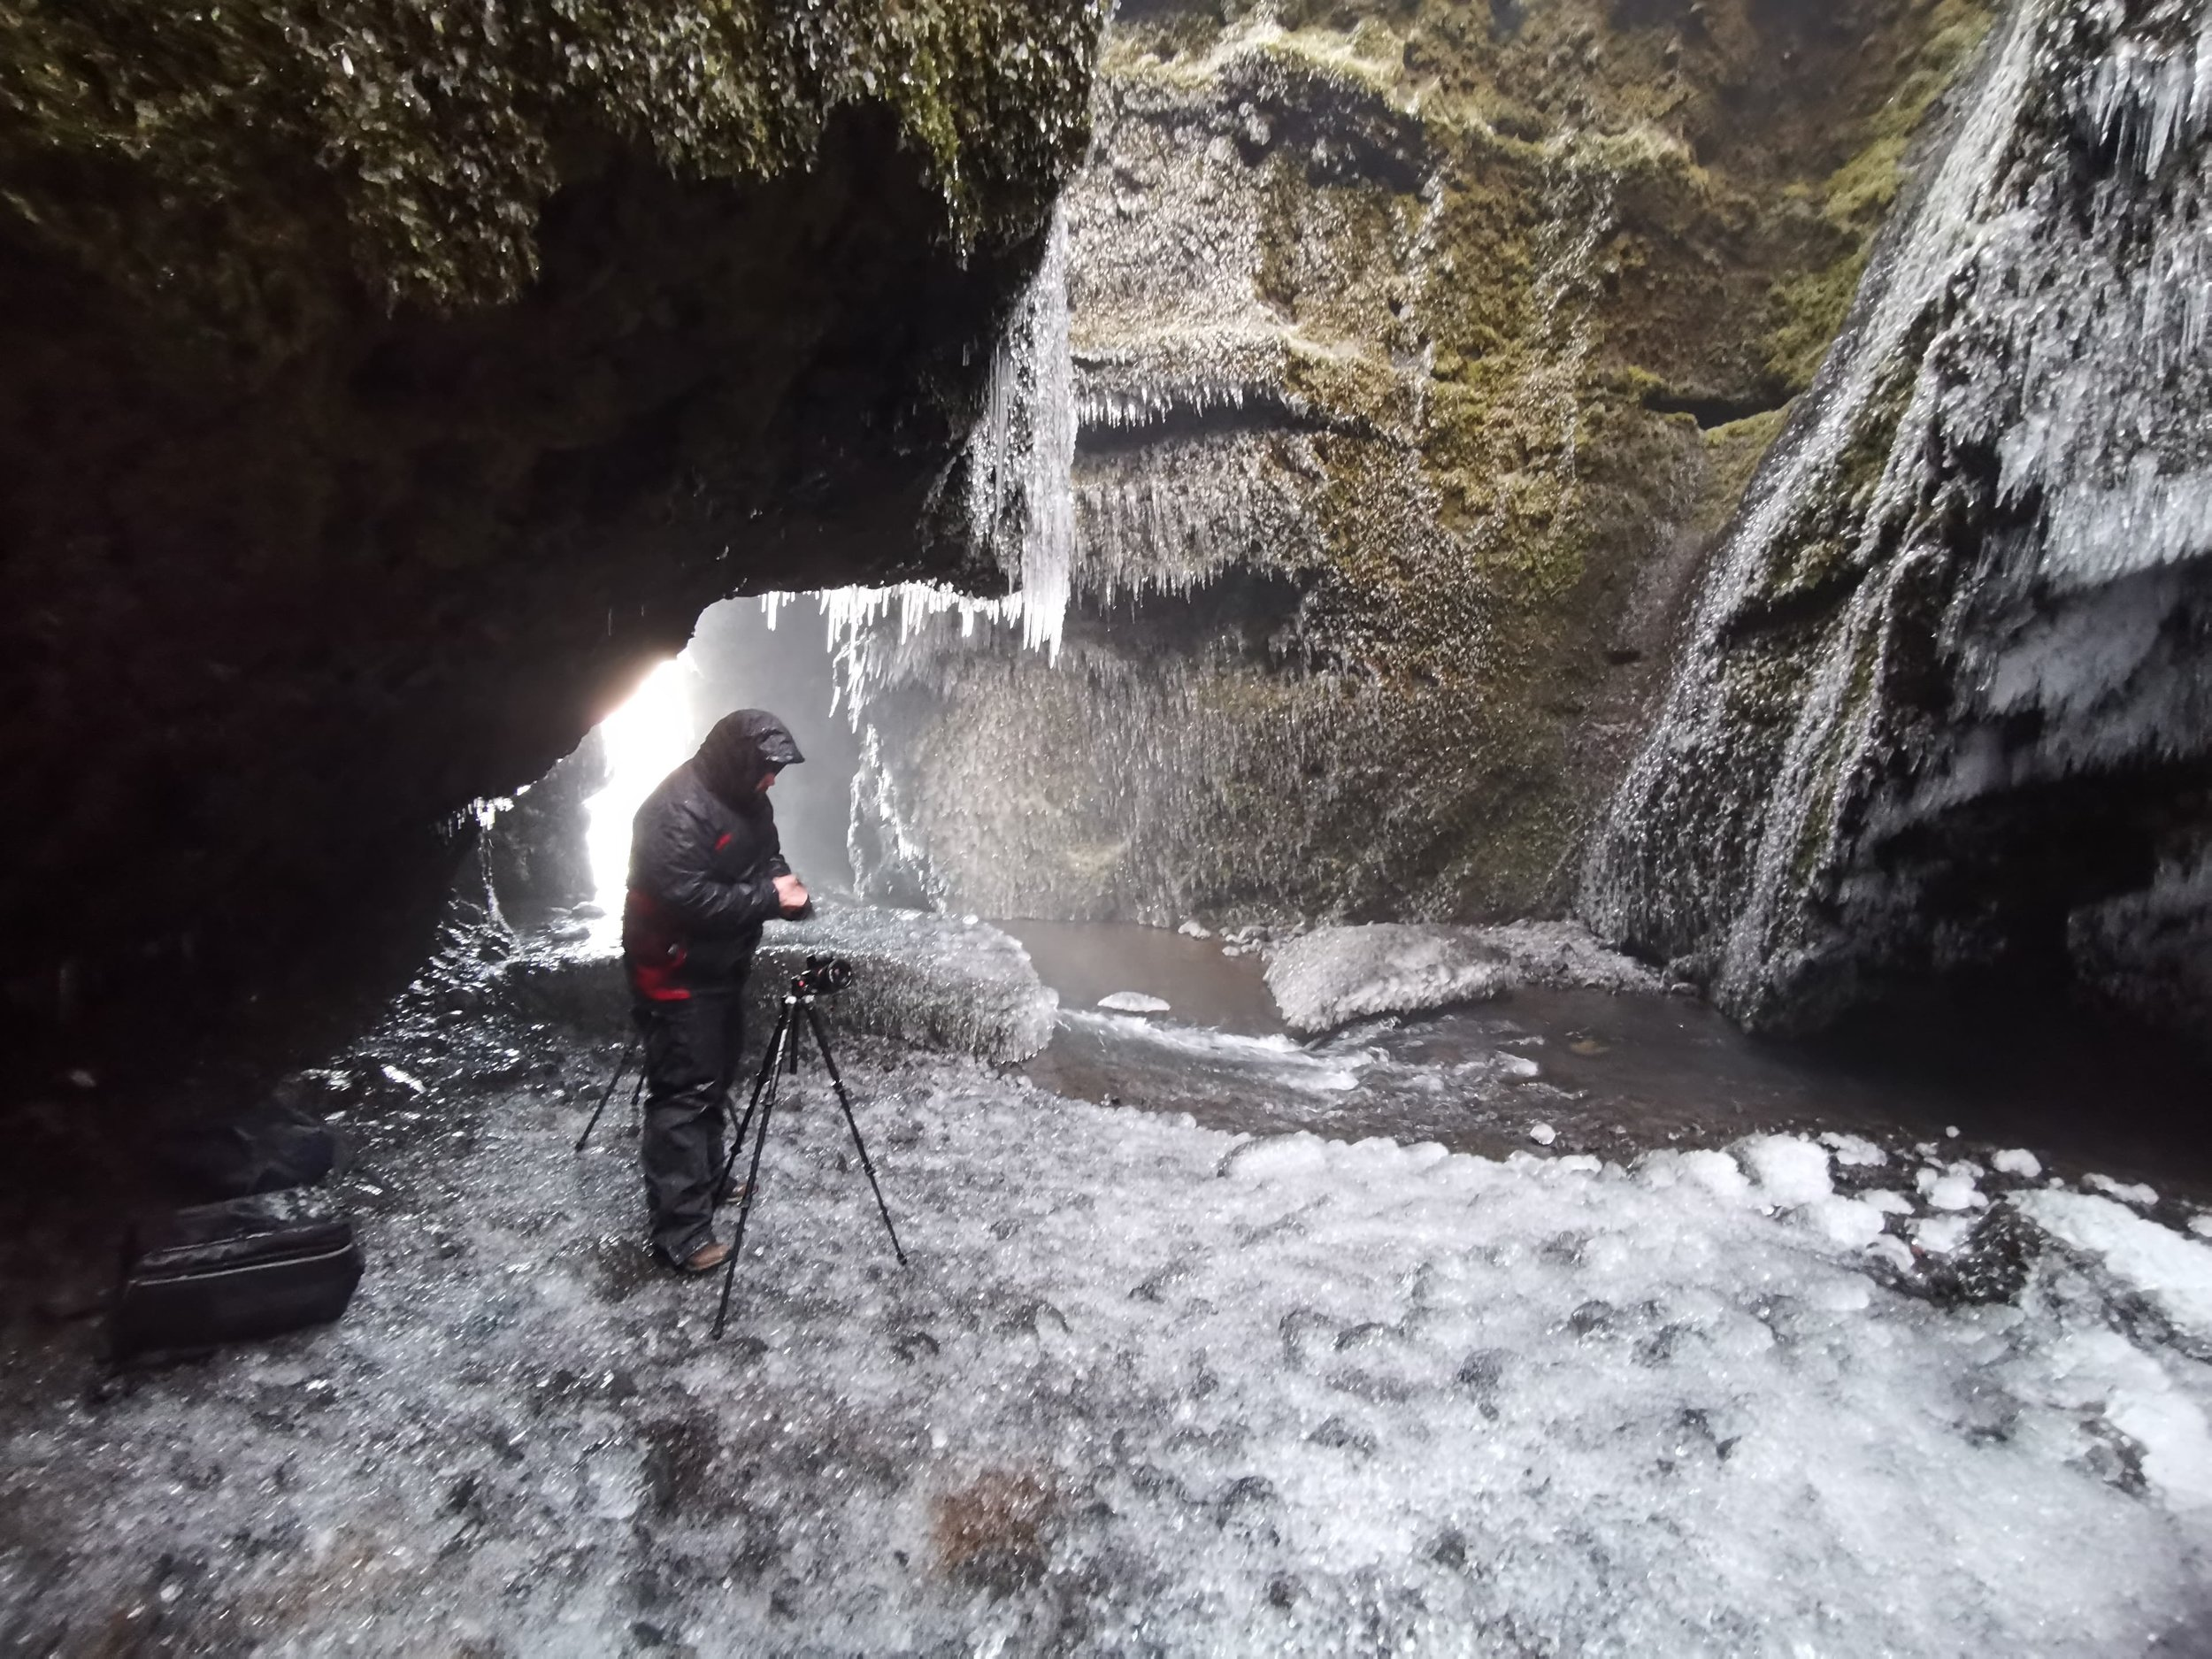 Iceland. snow. travel. adventure. photography. trip. epic landscape. snow. cold. freezing. sunrise. its cold in here.jpg